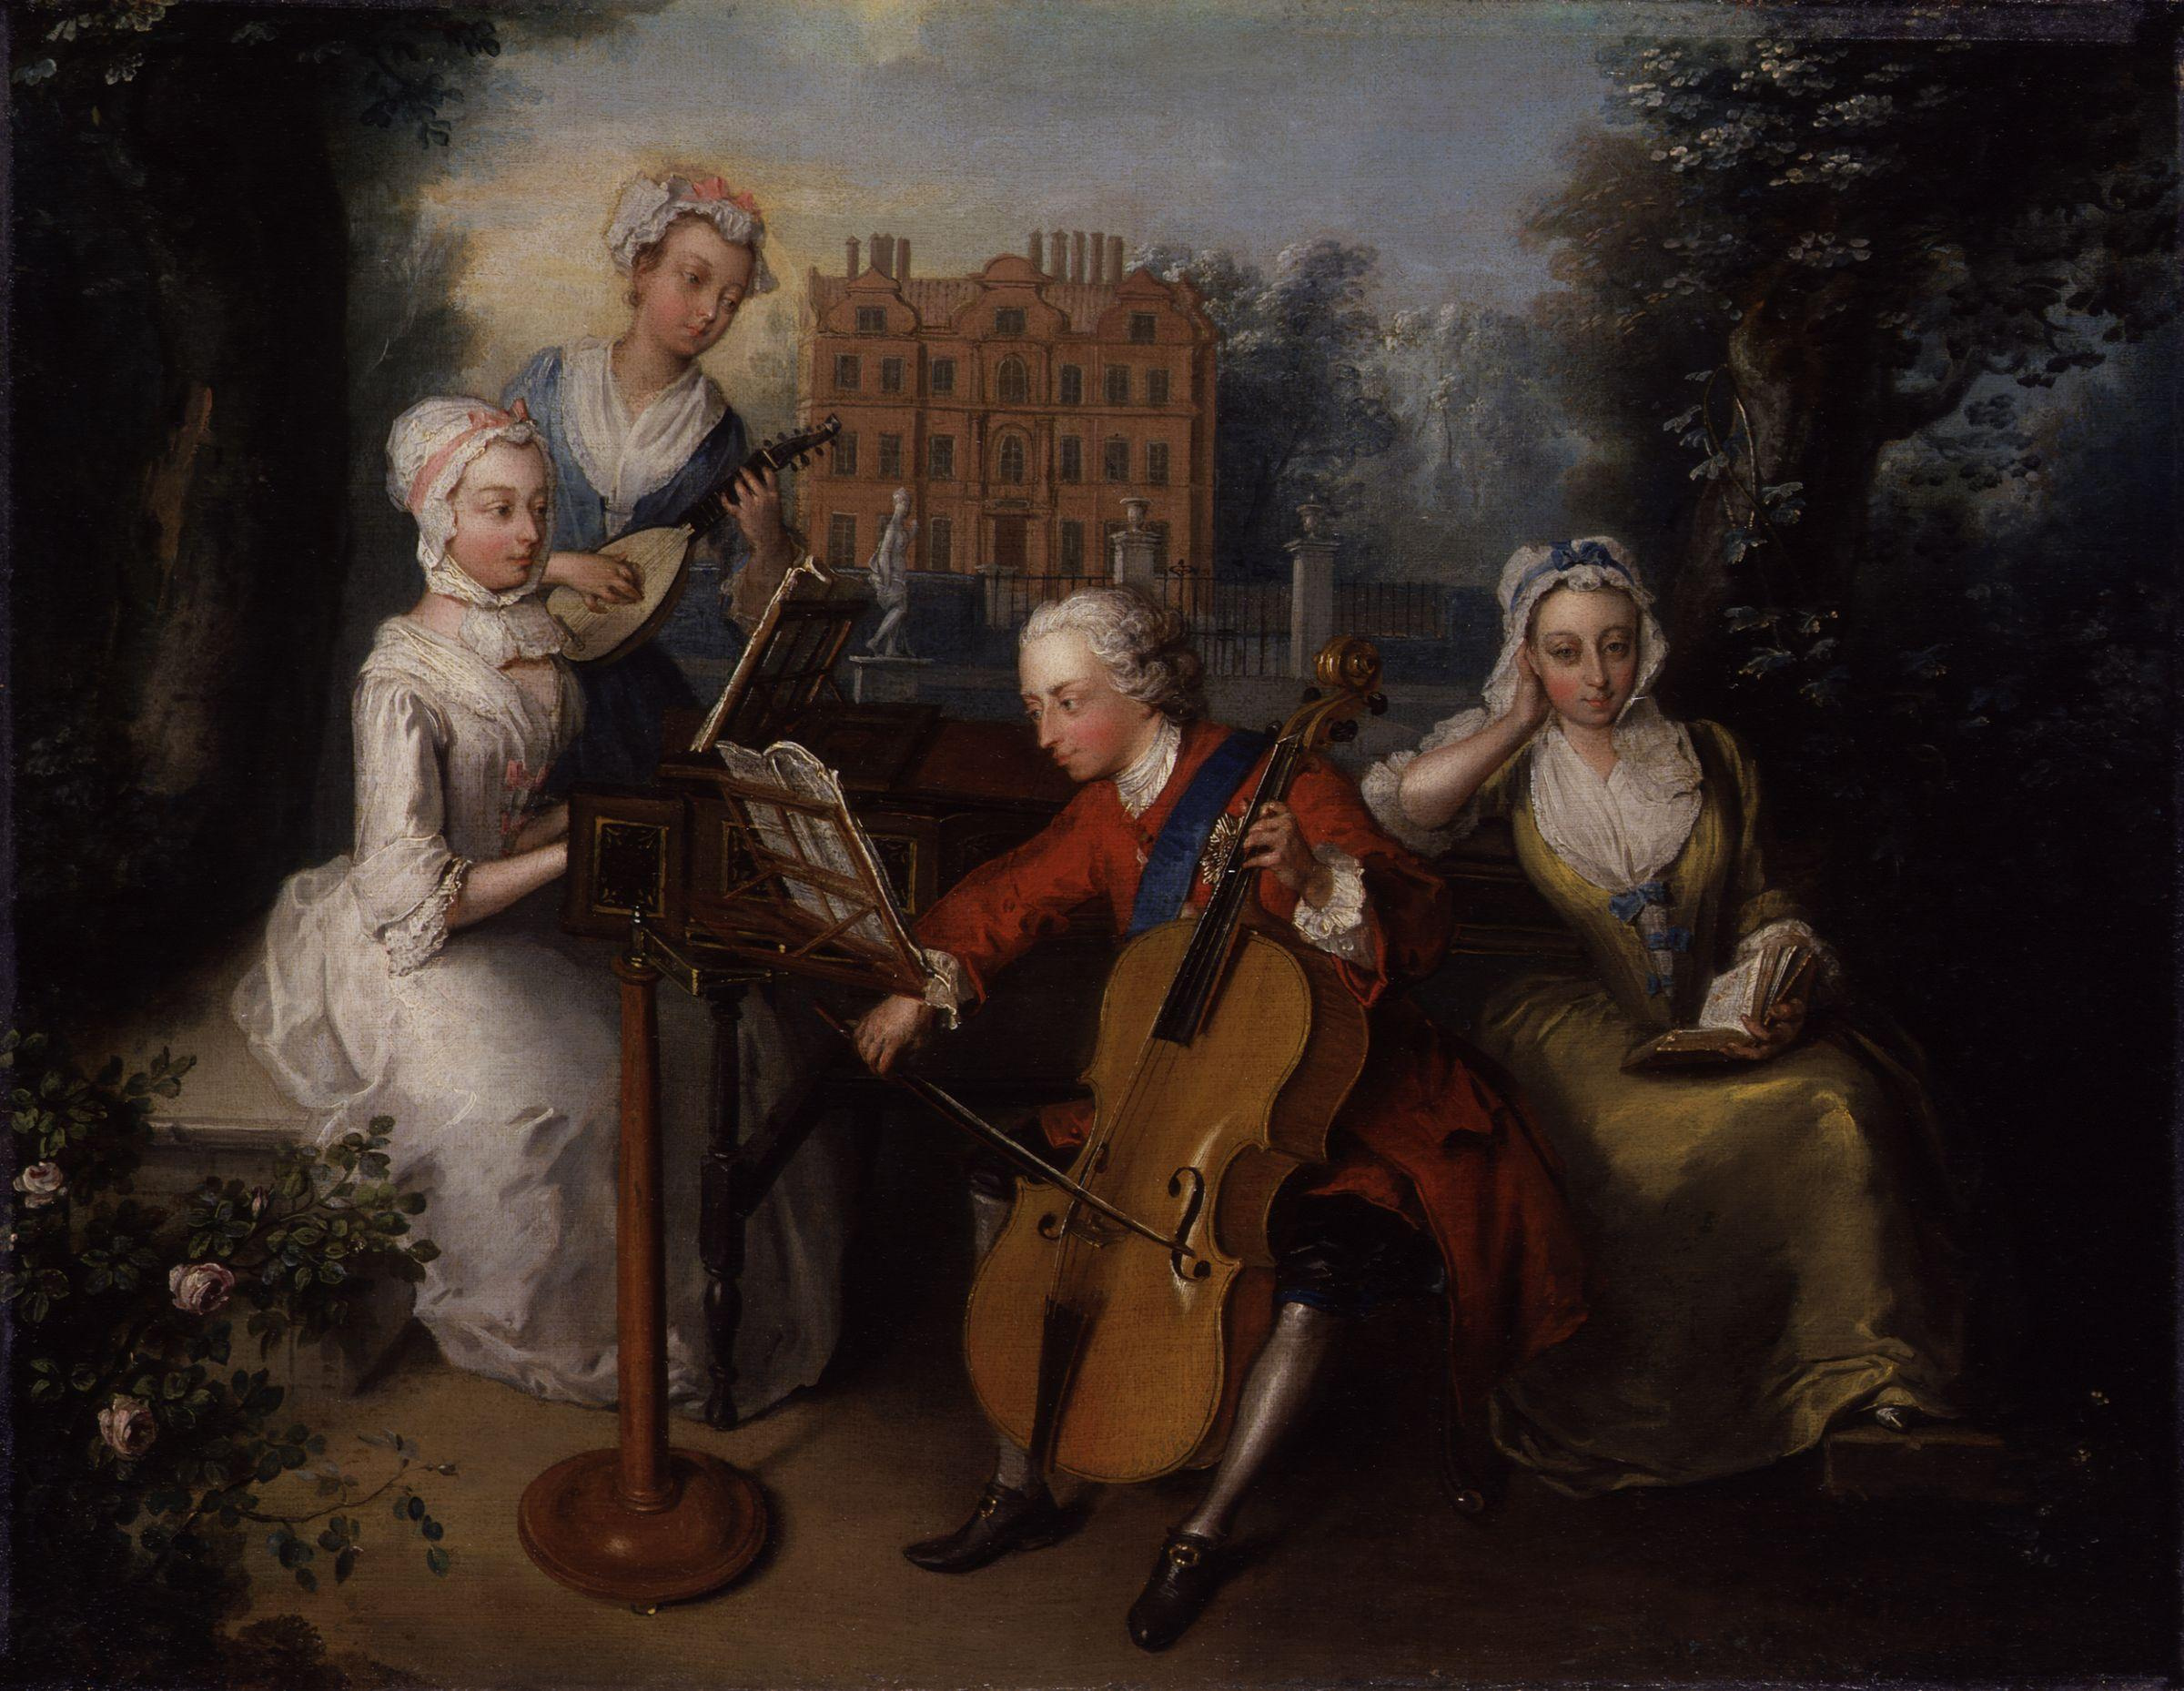 Frederick,_Prince_of_Wales,_and_his_sisters_by_Philip_Mercier.jpg